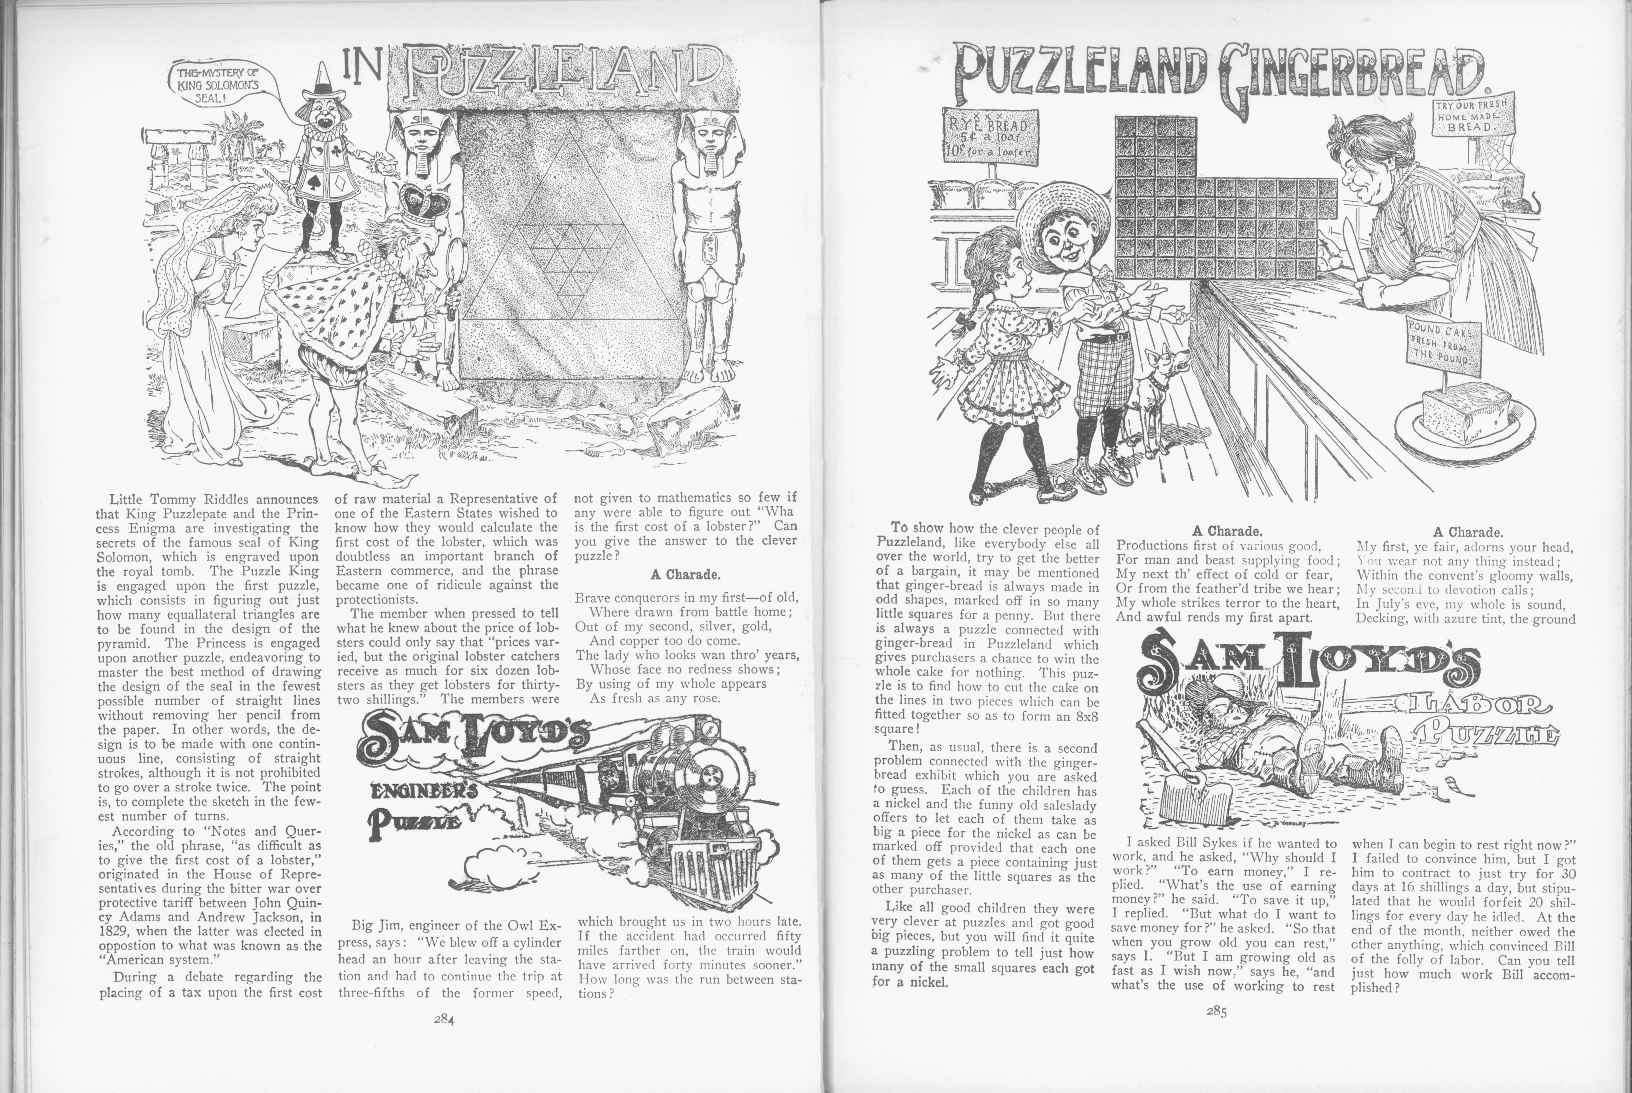 Sam Loyd - Cyclopedia of Puzzles - page 284-285